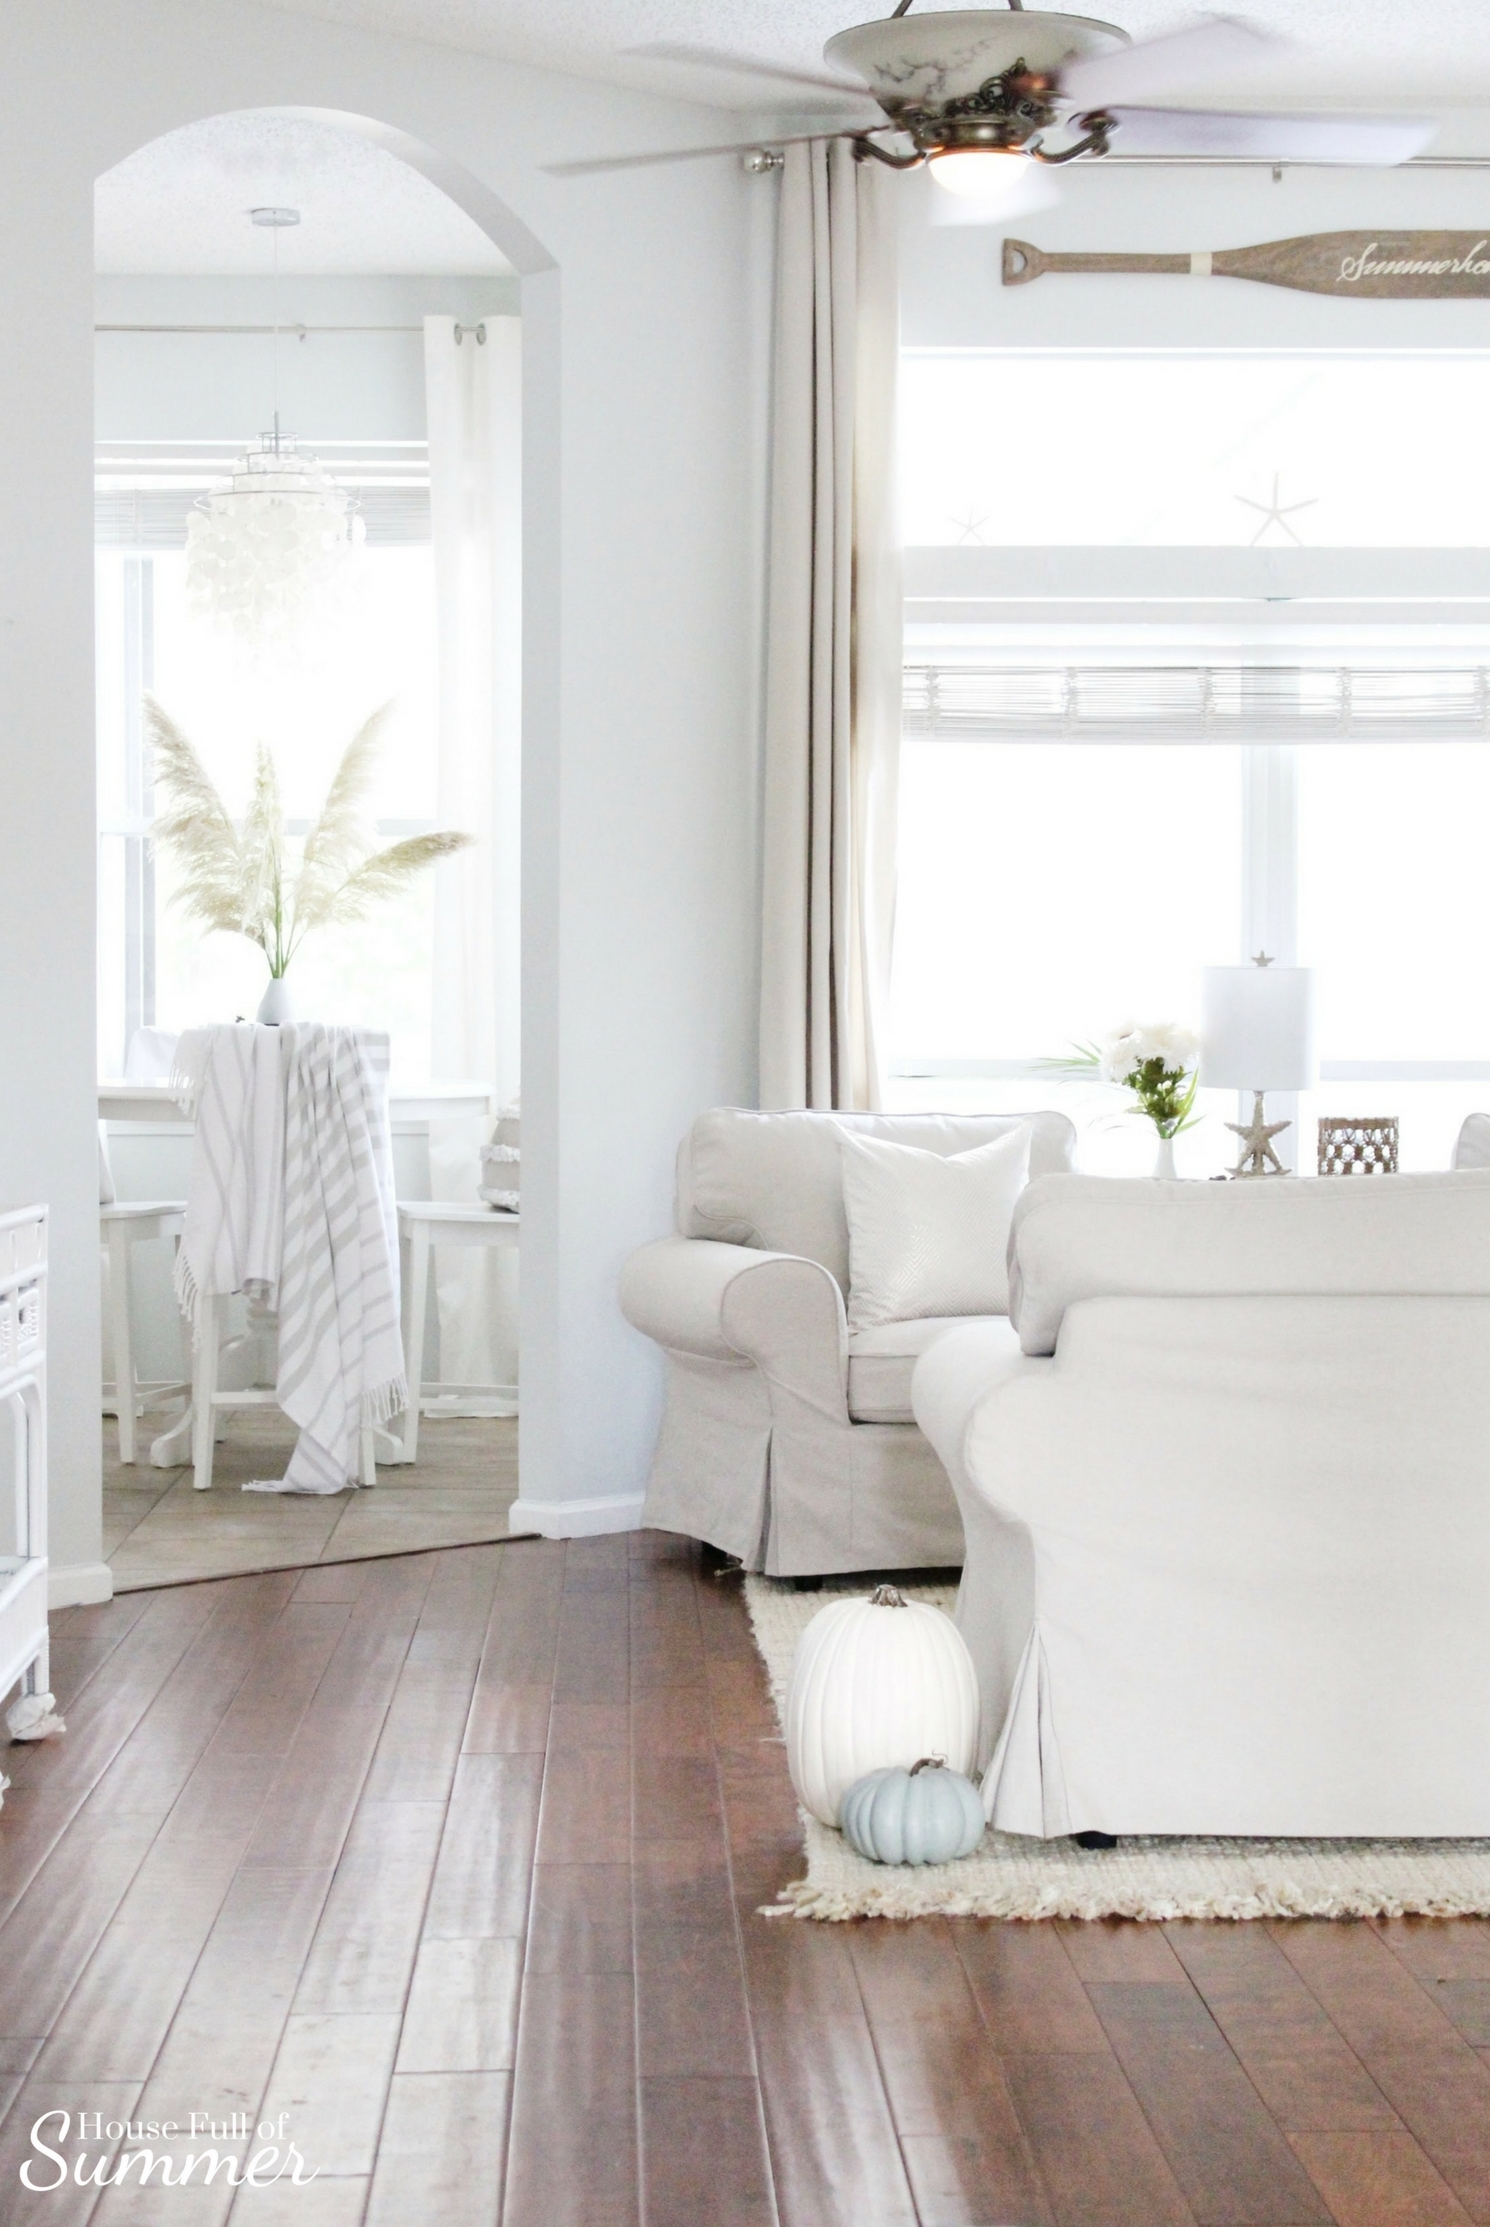 House Full of Summer: Fall Home Tour Blog Hop - Cozy, Coastal, Chic Living Room fall decorating ideas. Neutral interior, living room decor, white pumpkins, blue pumpkins, beige living room ideas, striped throw, breakfast nook, white chandelier